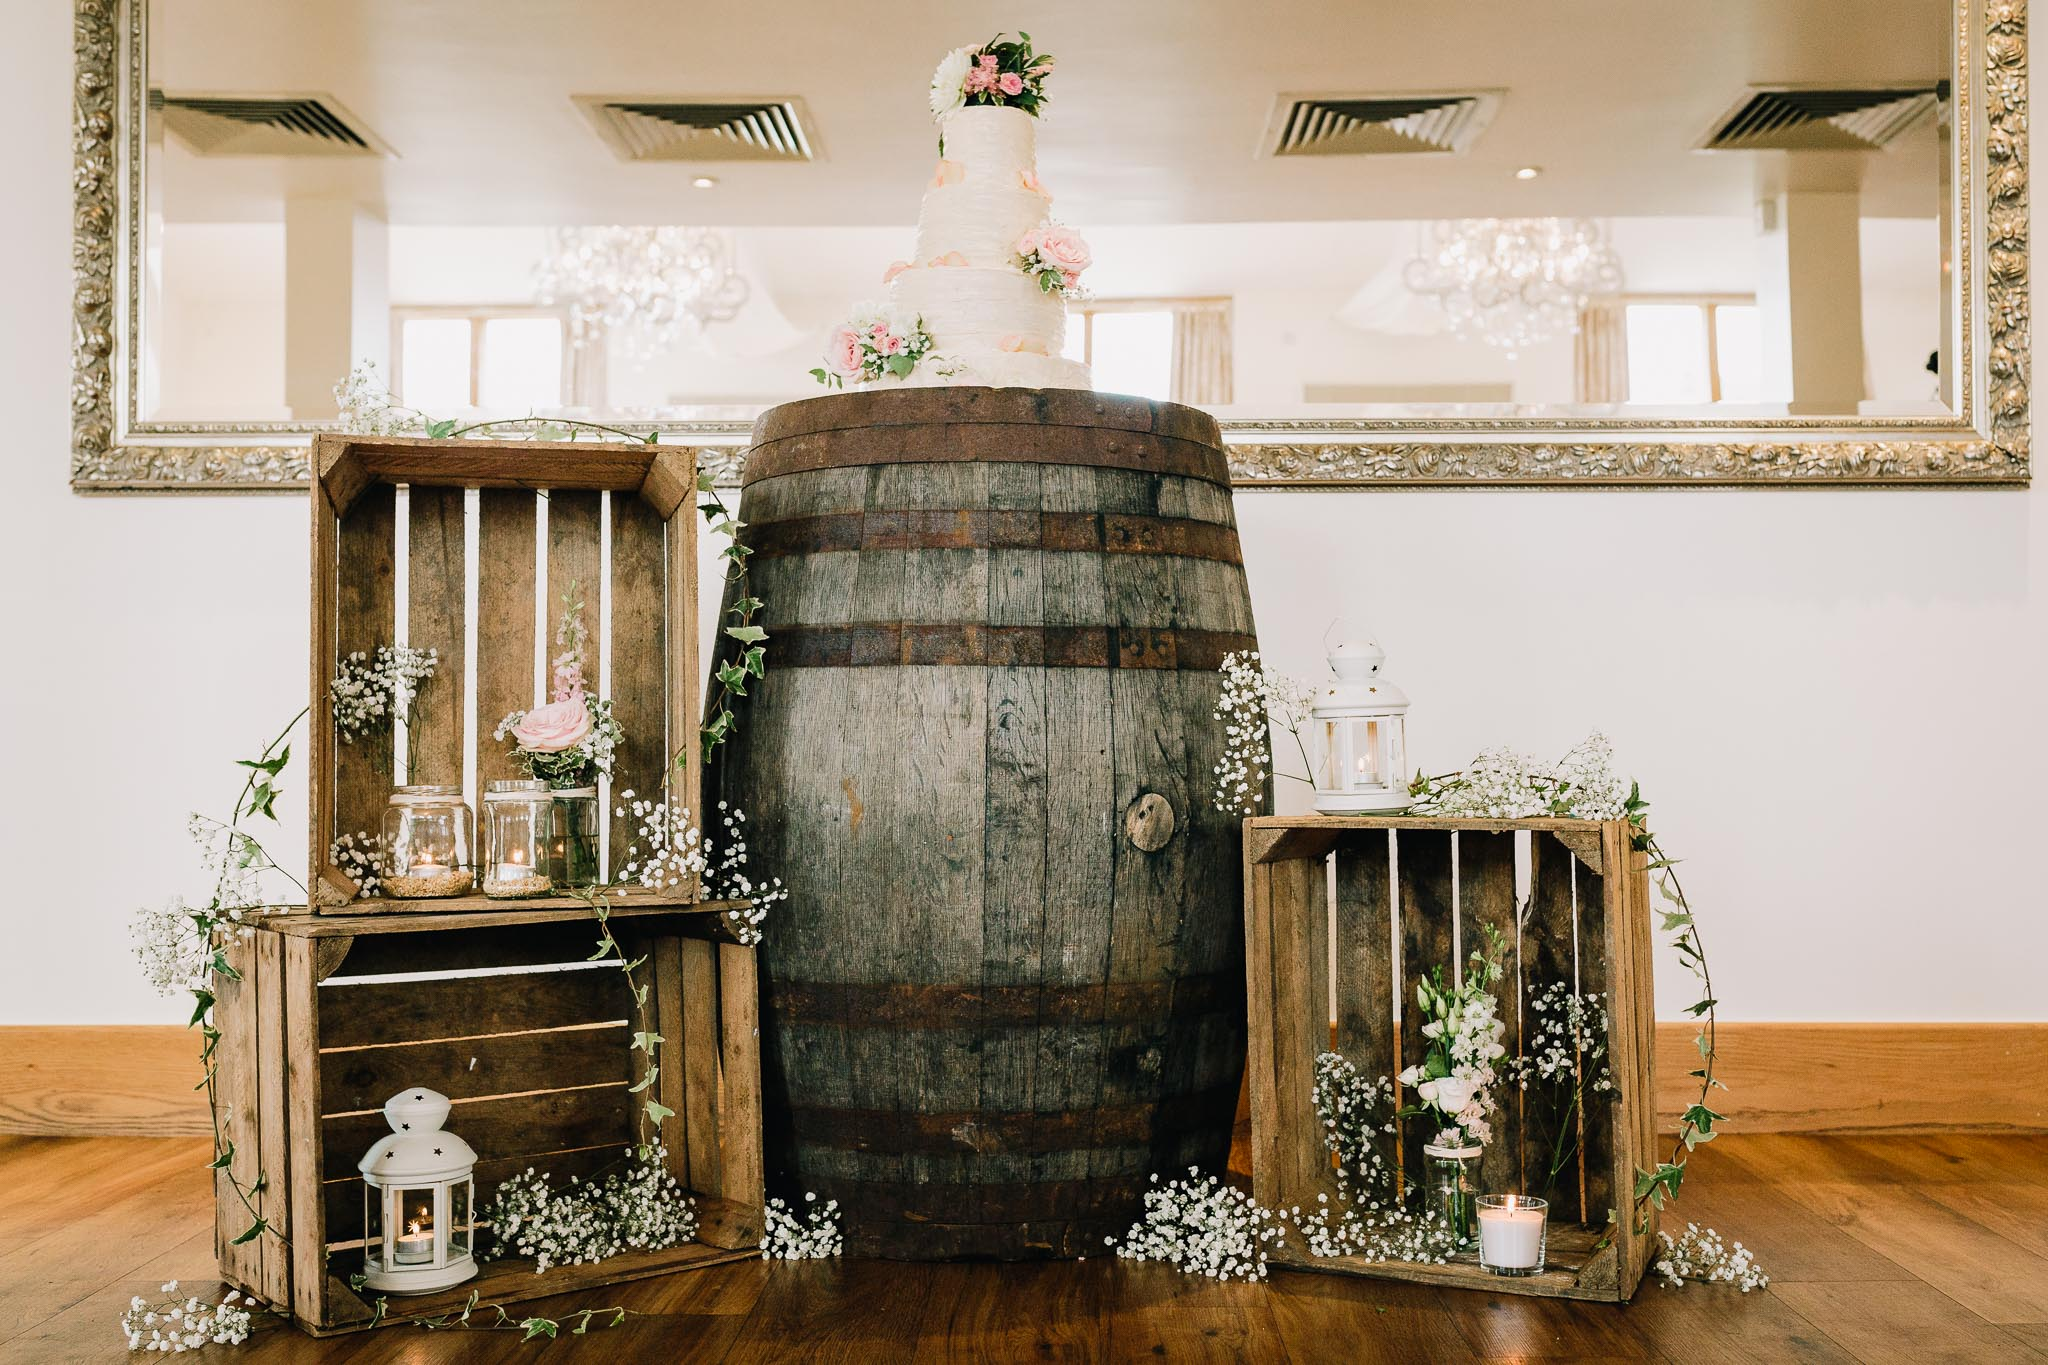 WHISKEY BARRELS AND RUSTIC CRATES AT WEDDING RECEPTION